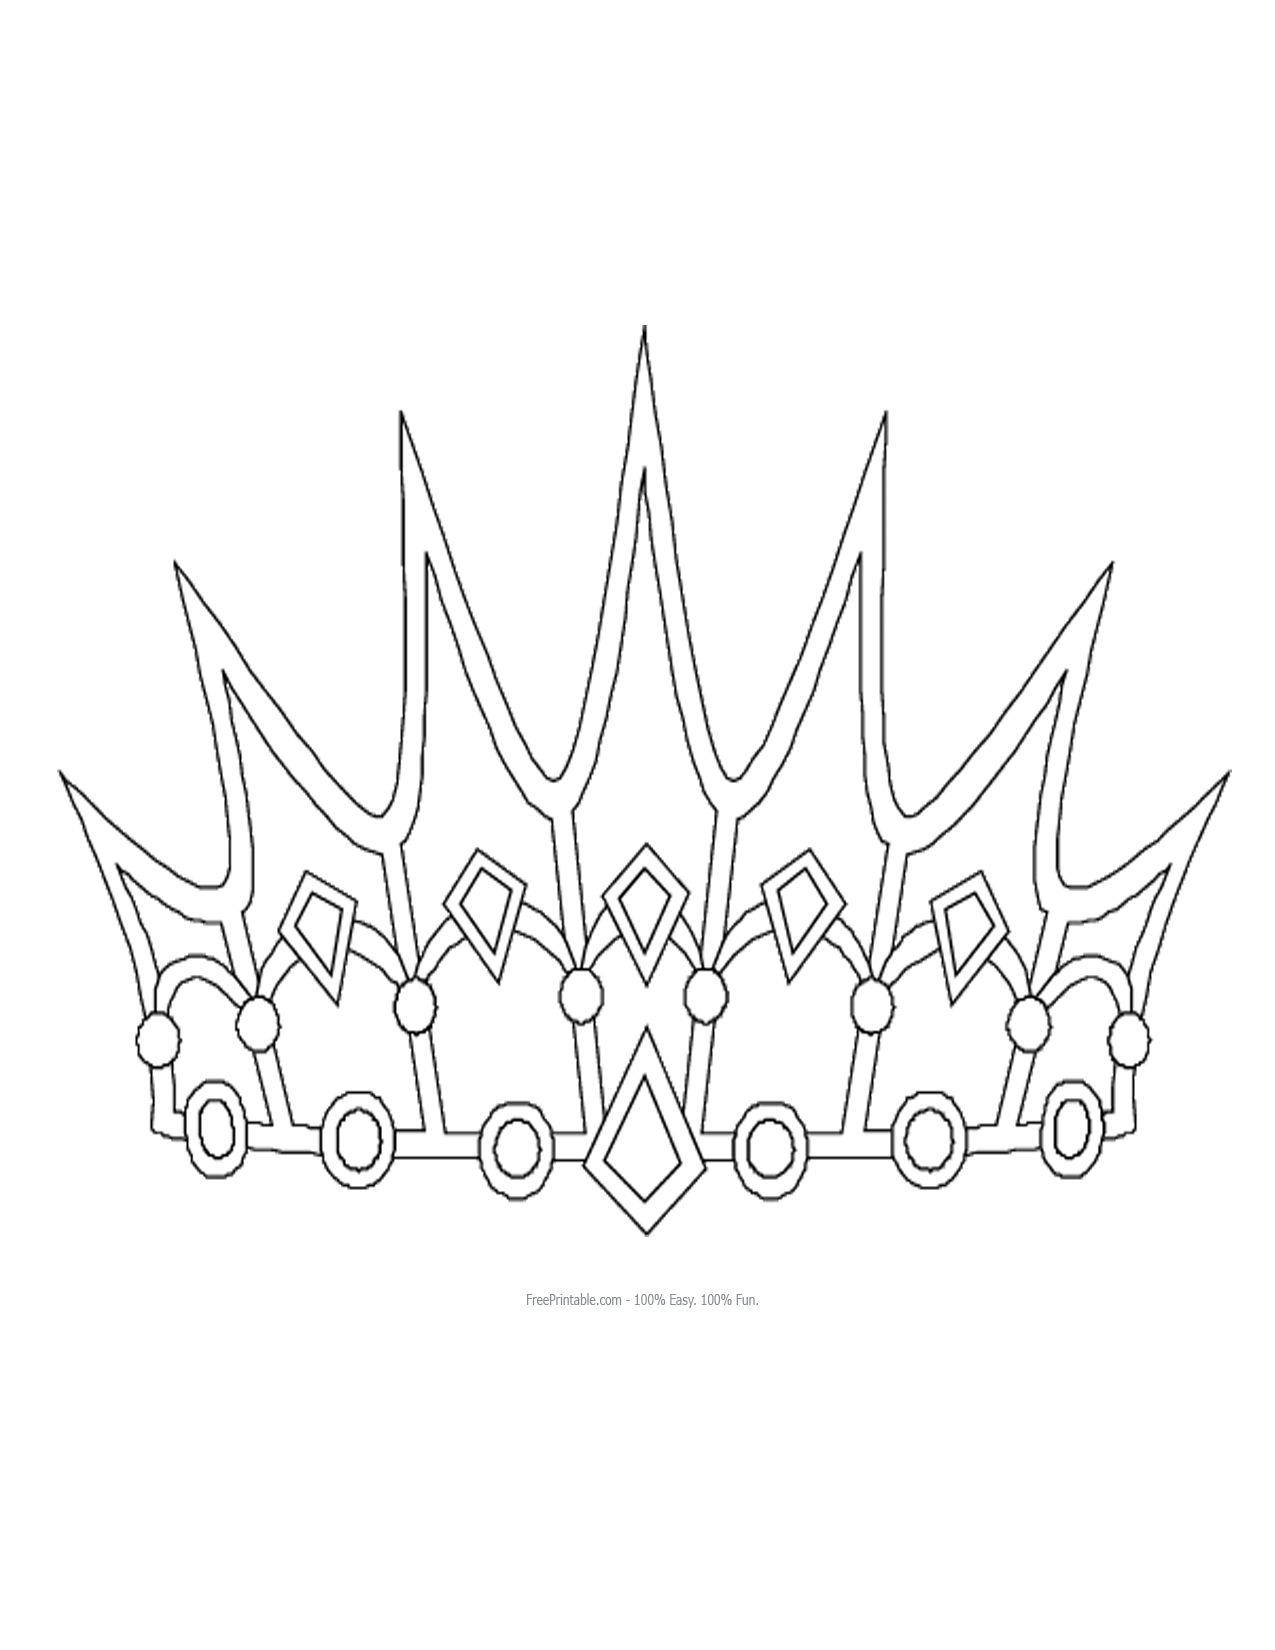 Inspiring King And Queen Crown Templates Colouring In Beatiful Free - Free Printable King Crown Template